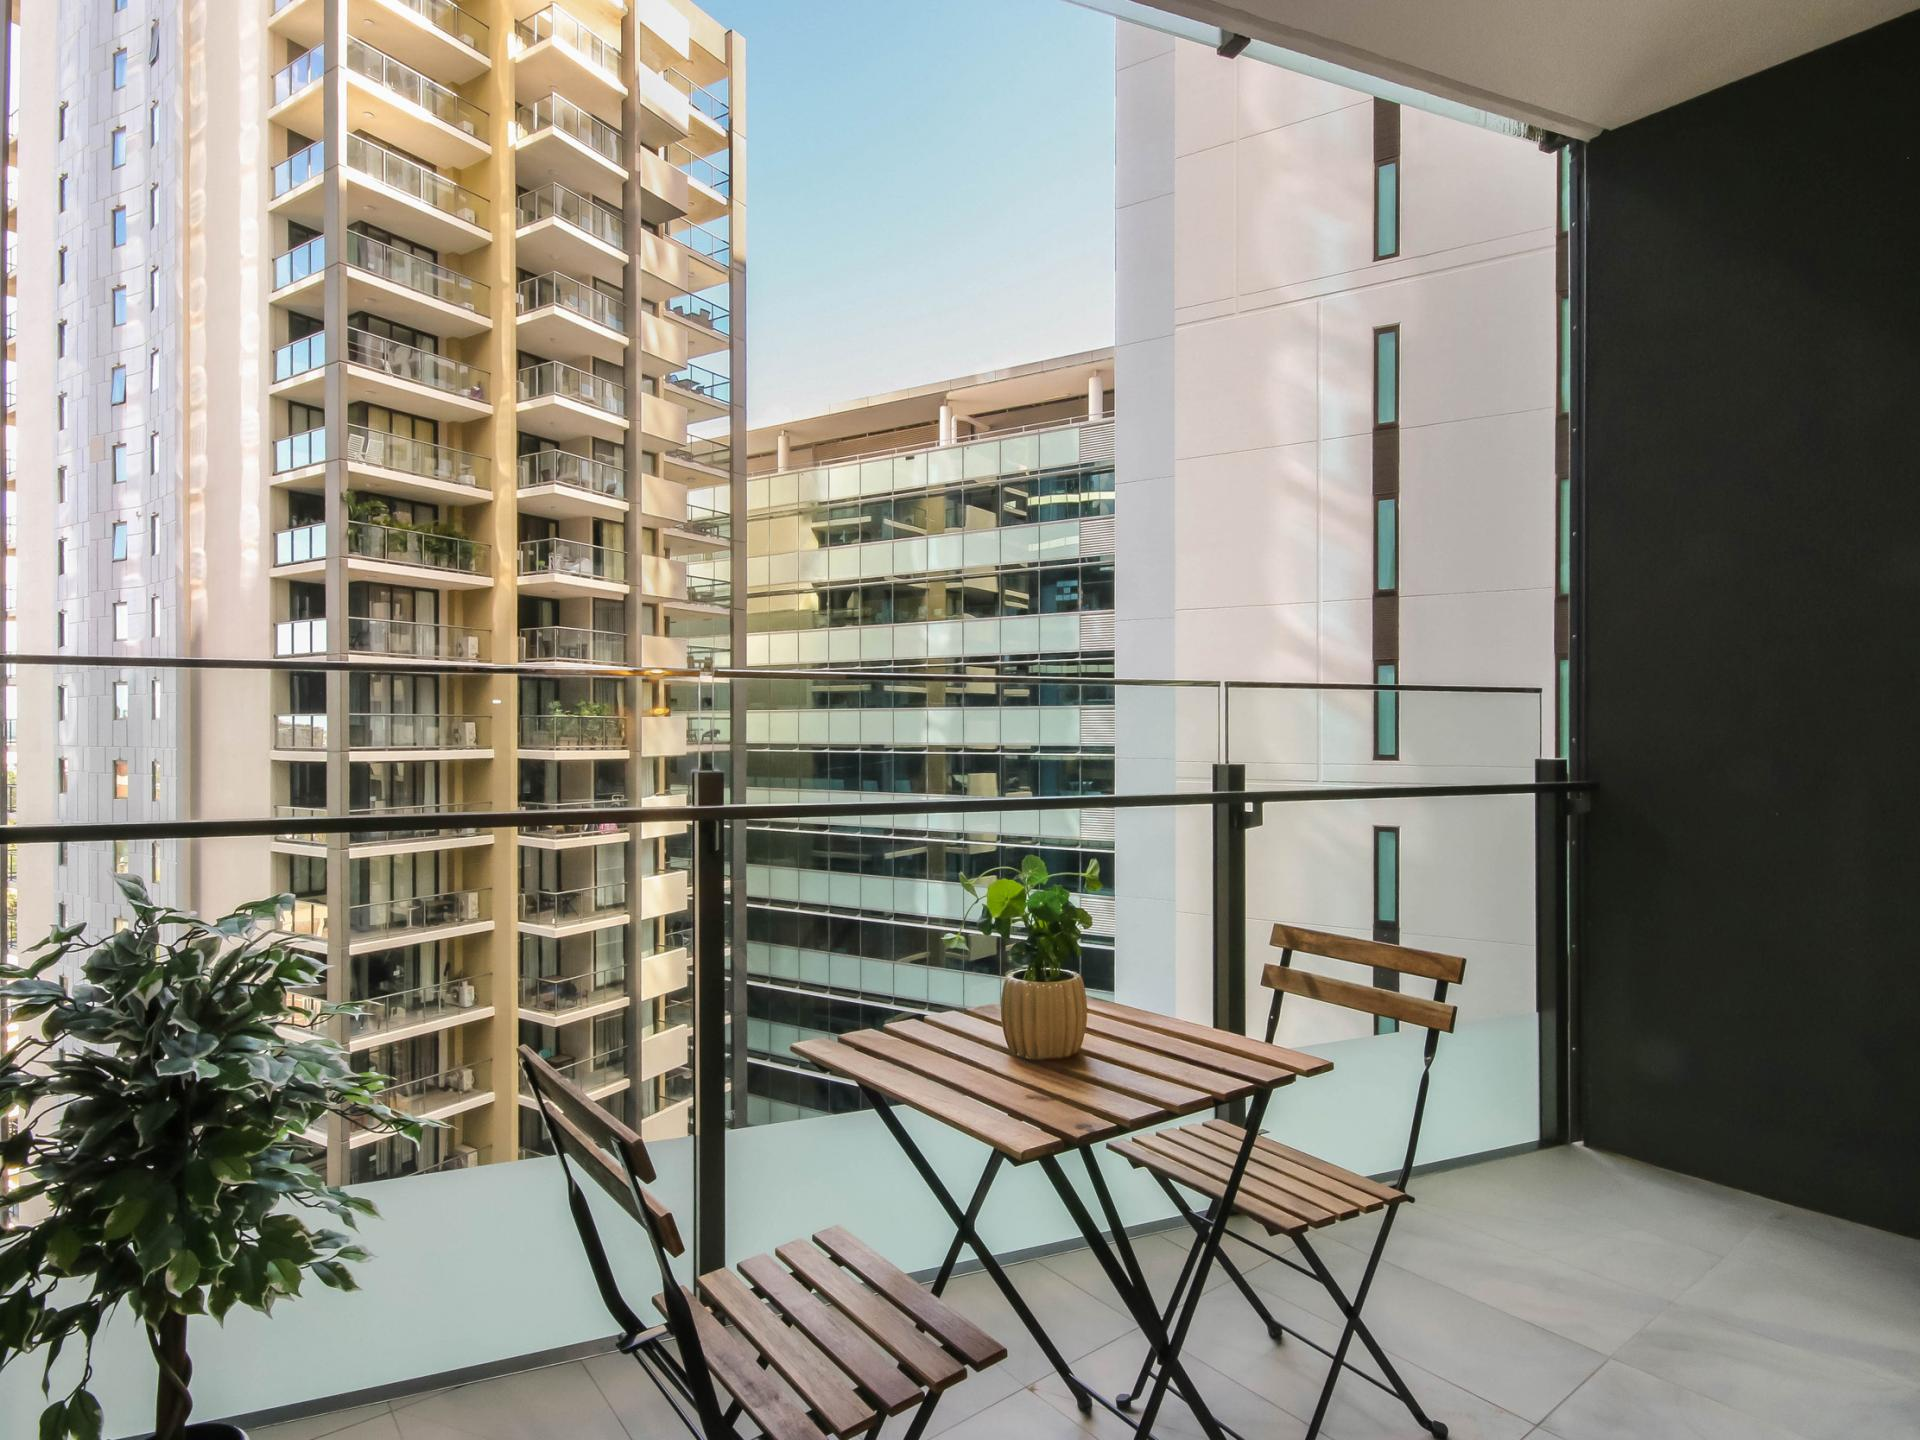 Balcony at The Mary Street Apartment, Frog's Hollow, Brisbane